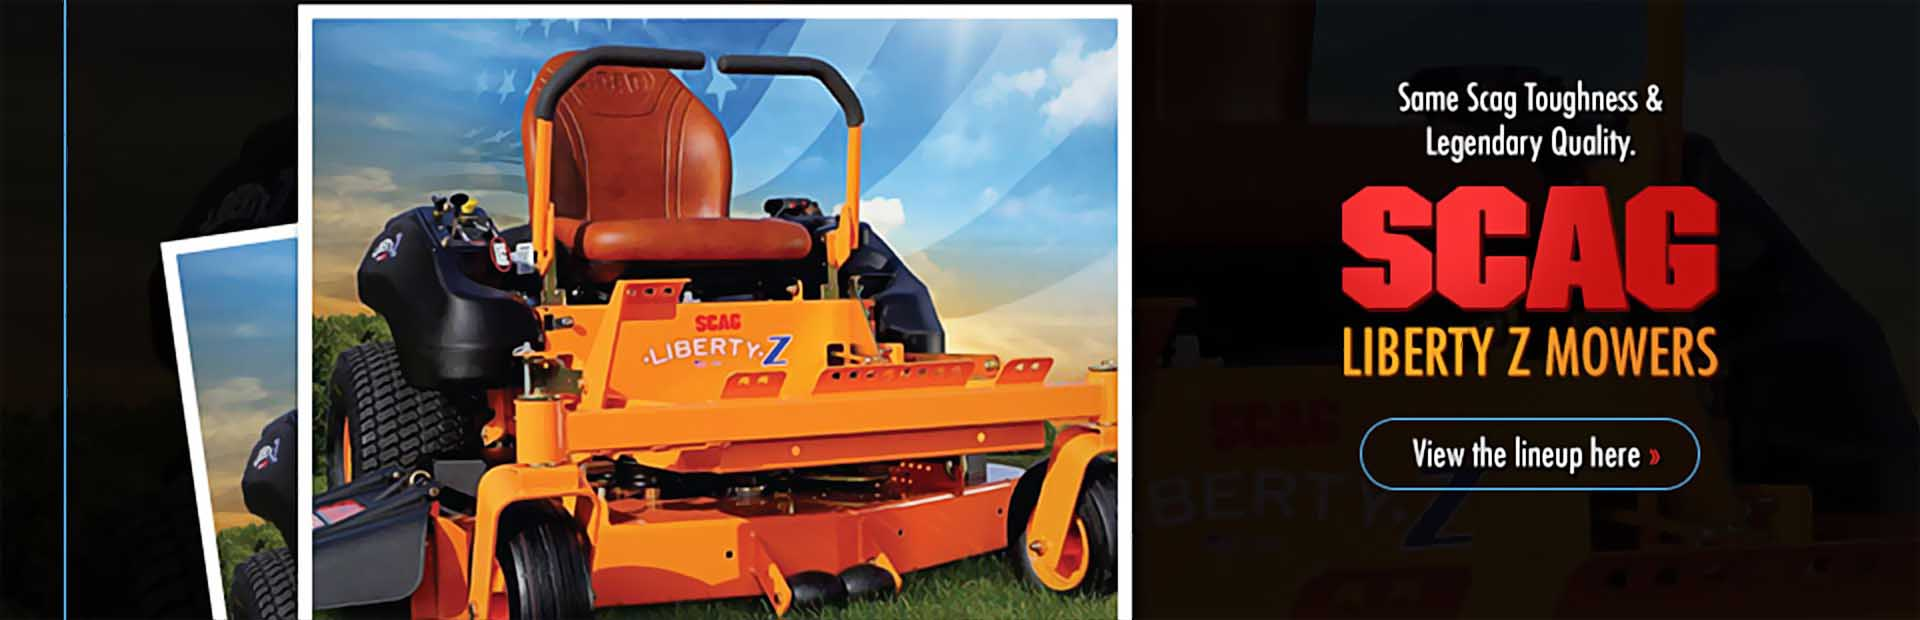 Scag Liberty Z Mowers: Shop our selection and contact Auto Authority today.